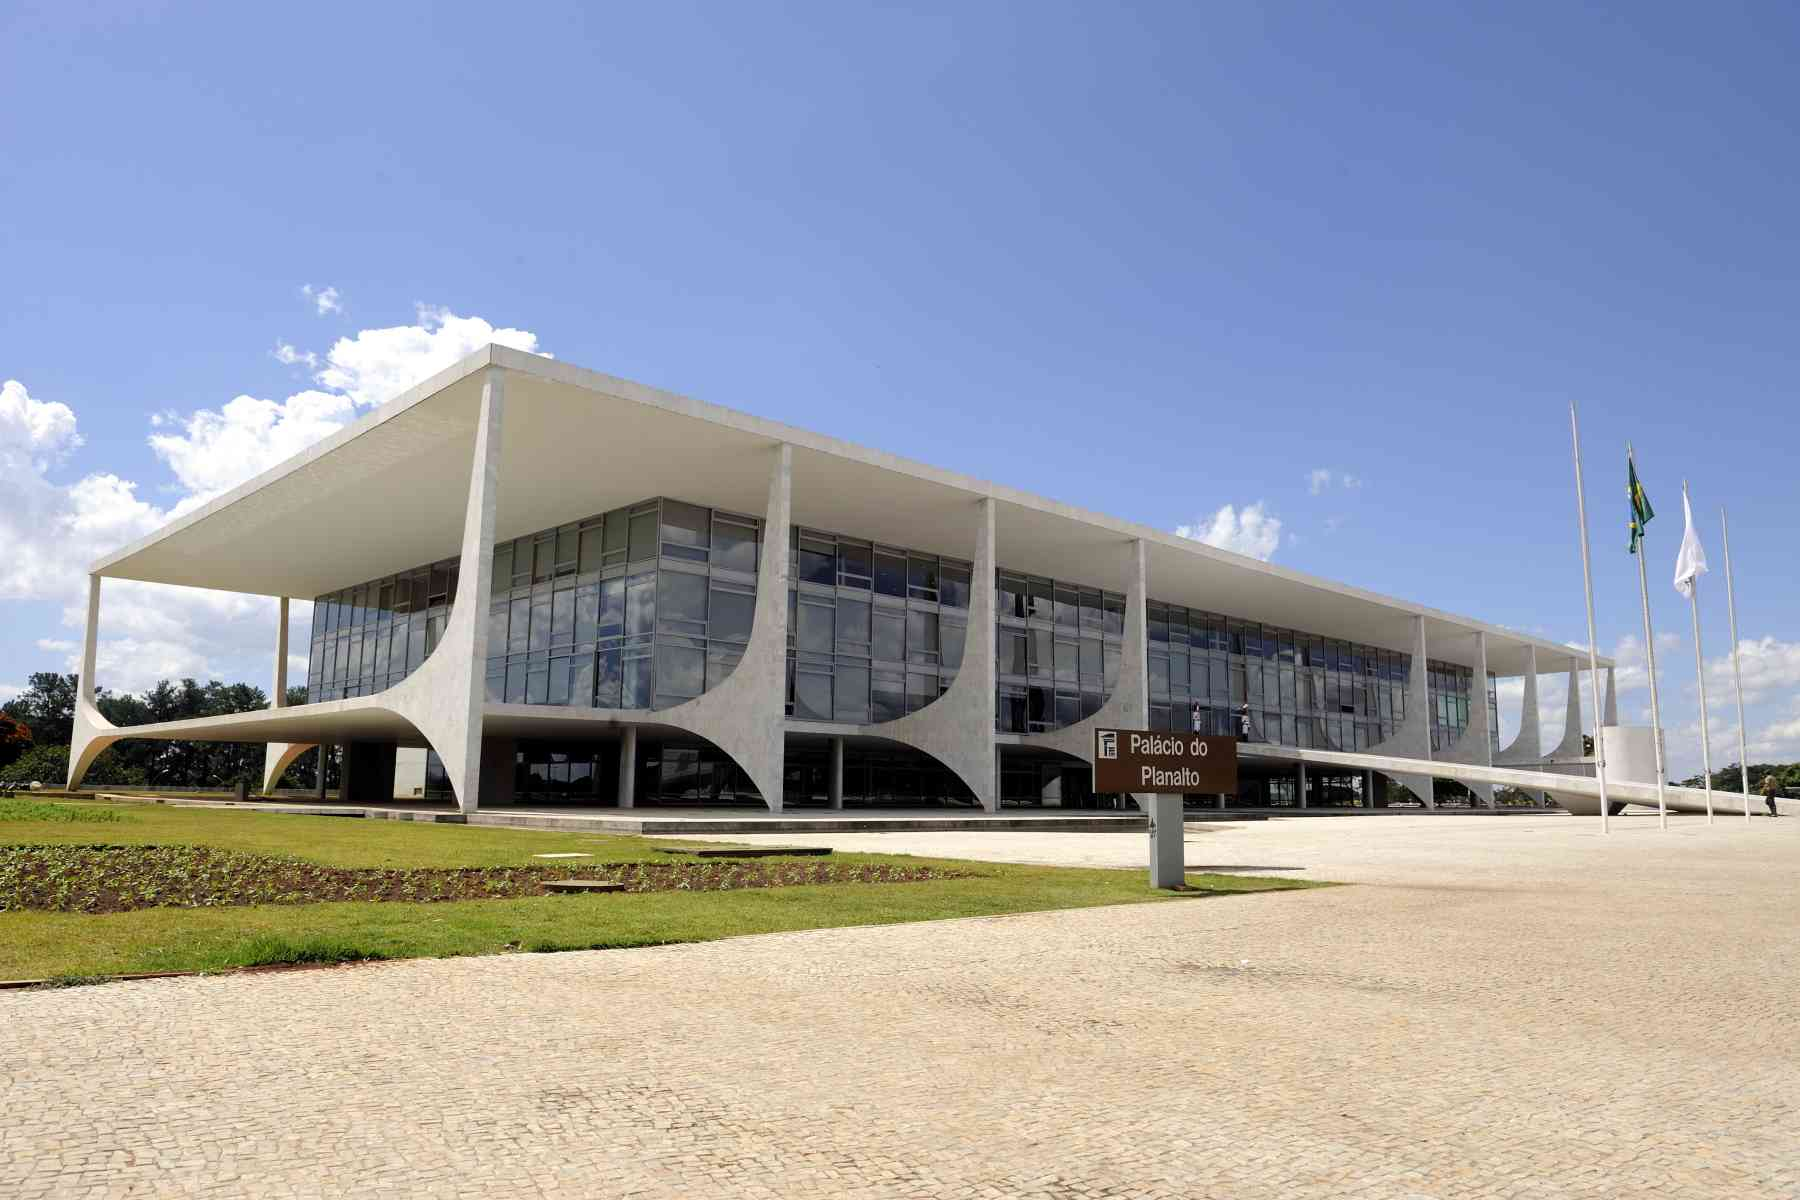 Planalto Palace is the official workplace of the President of Brazil.